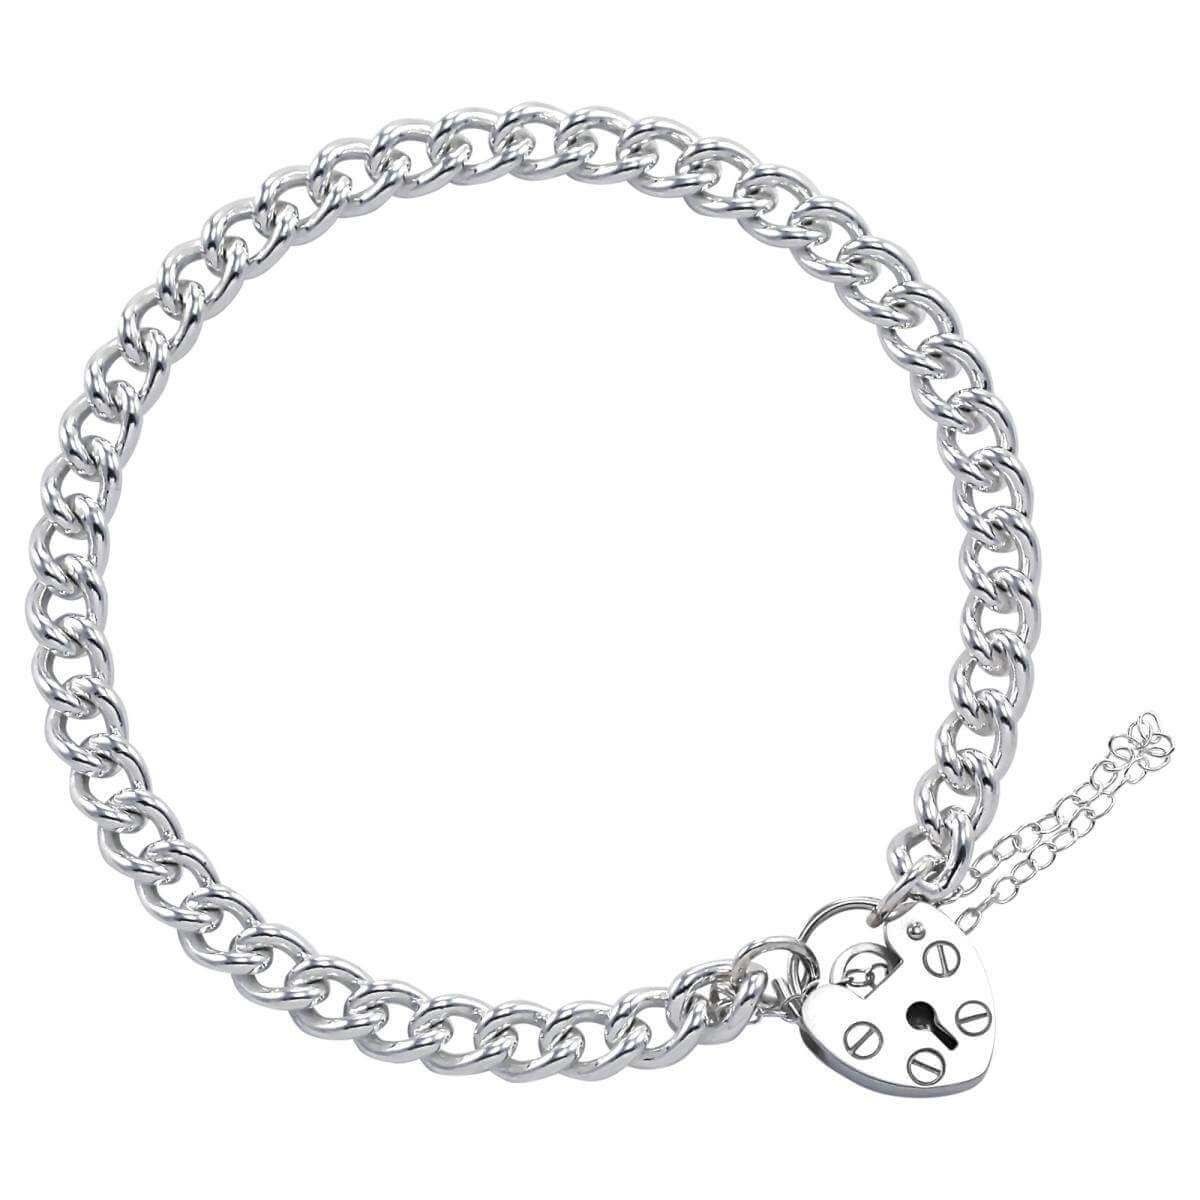 Sterling Silver Single Curb Charm Bracelet